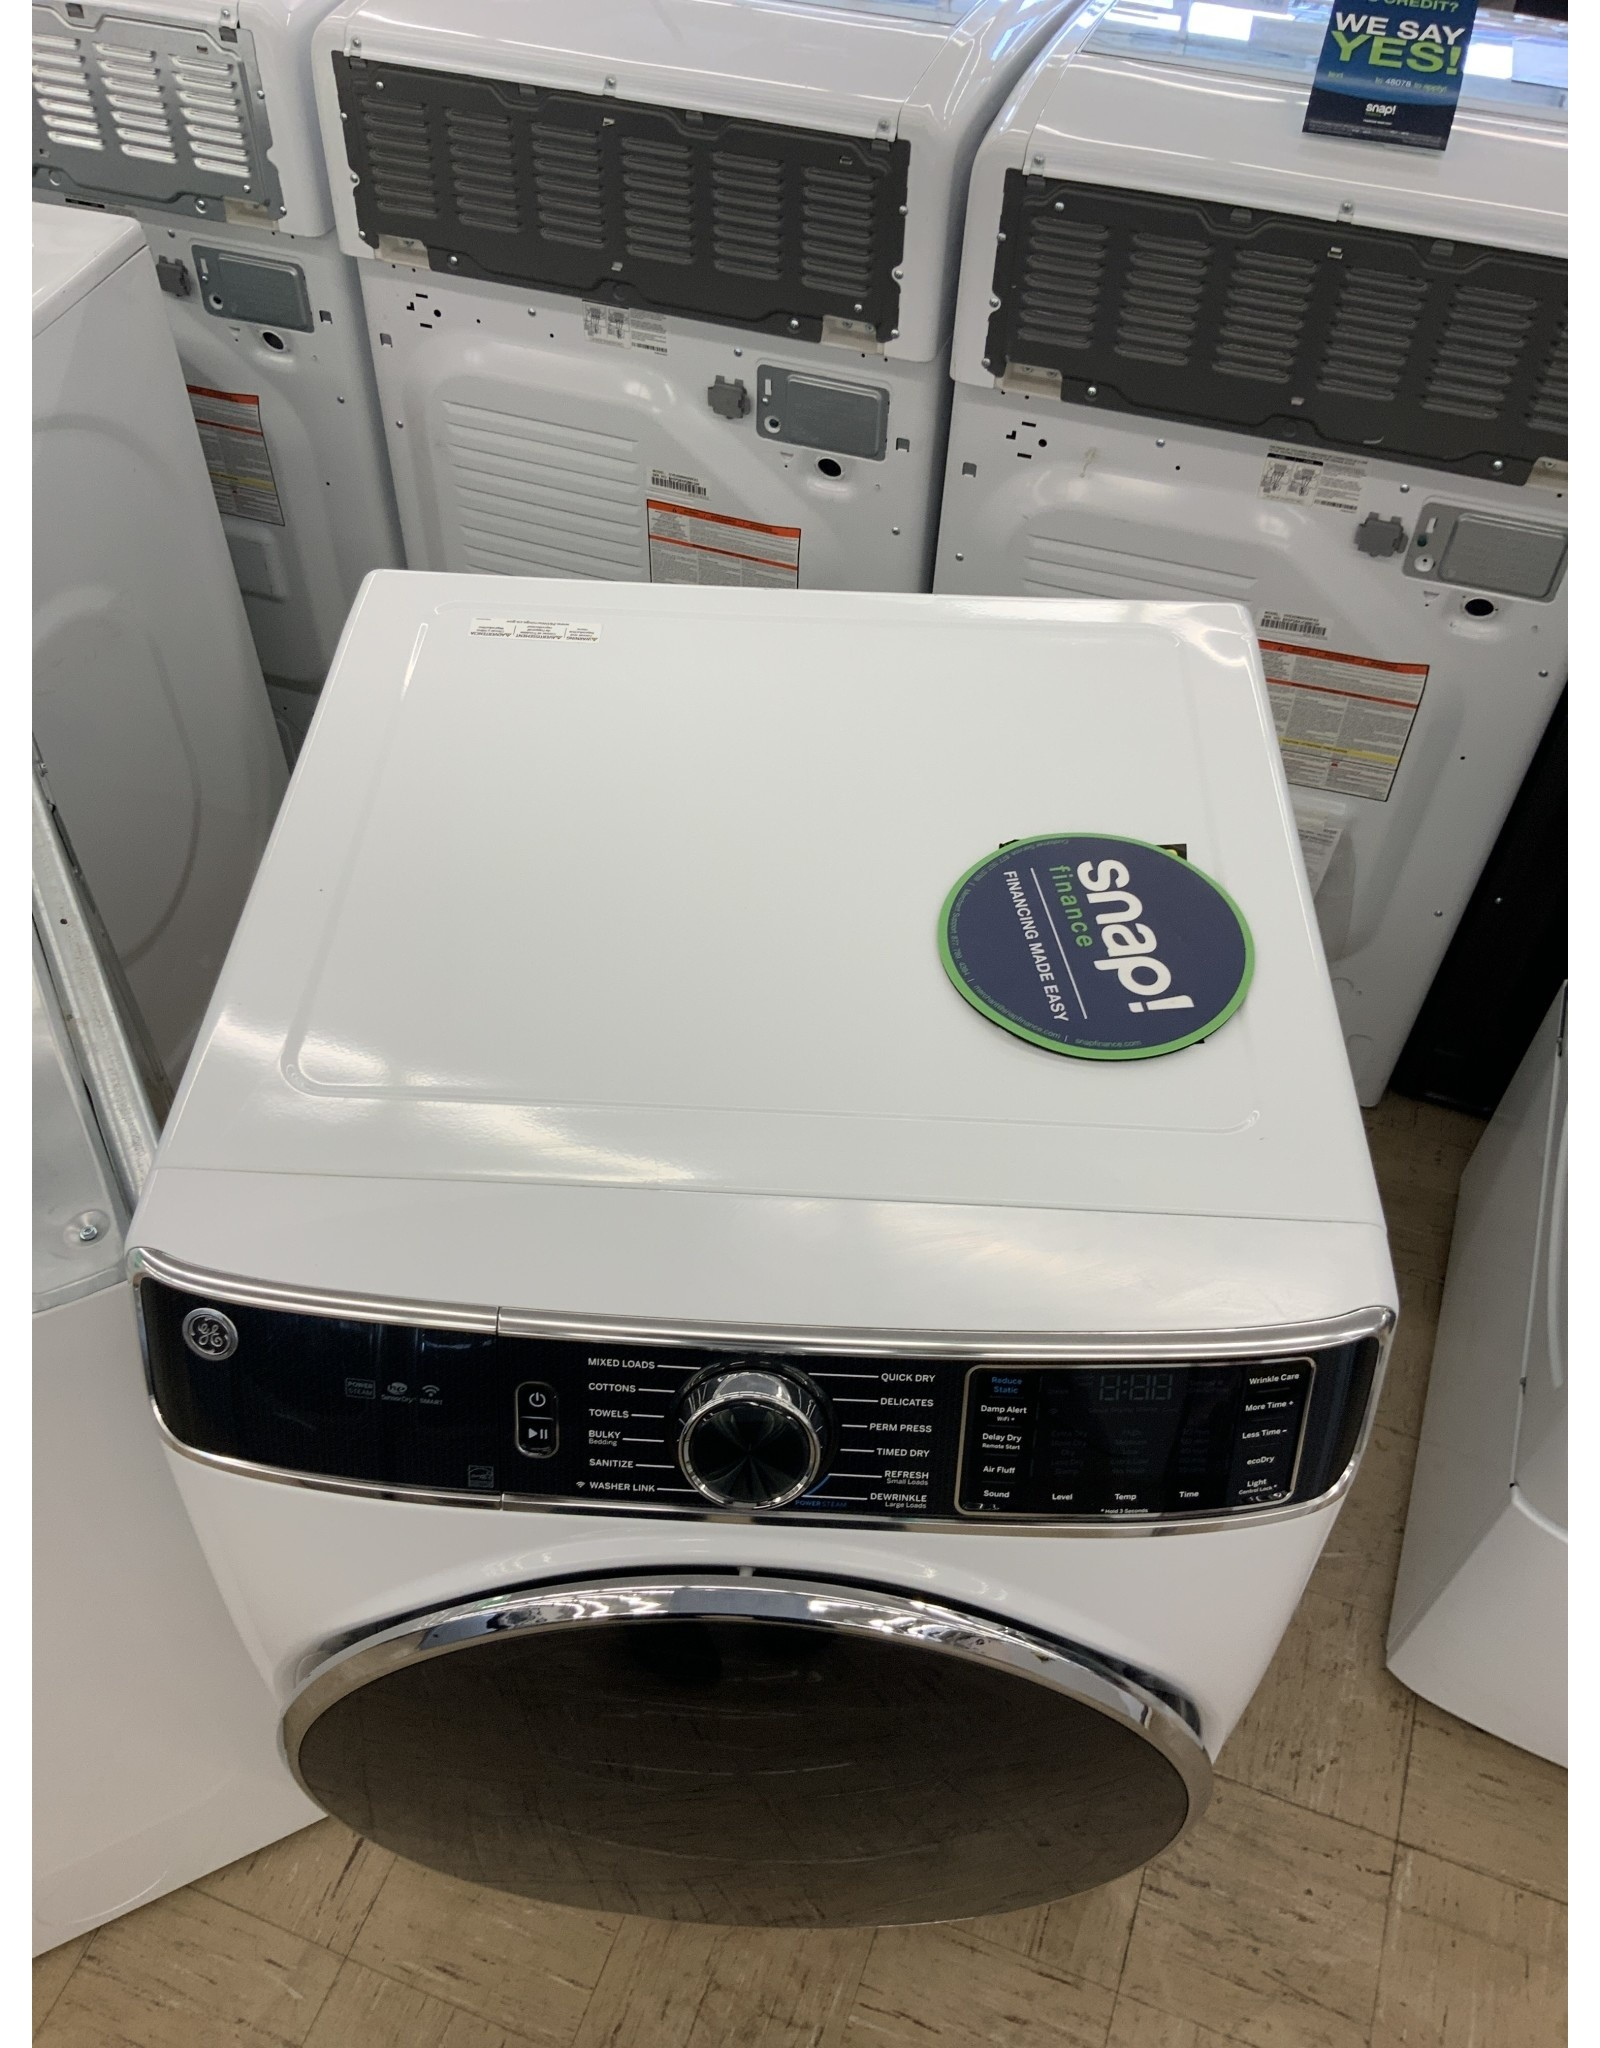 GE GFD85ESSNWW GE 7.8 cu. ft. Smart 240-Volt White Stackable Electric Vented Dryer with Steam and Sanitize Cycle, ENERGY STAR